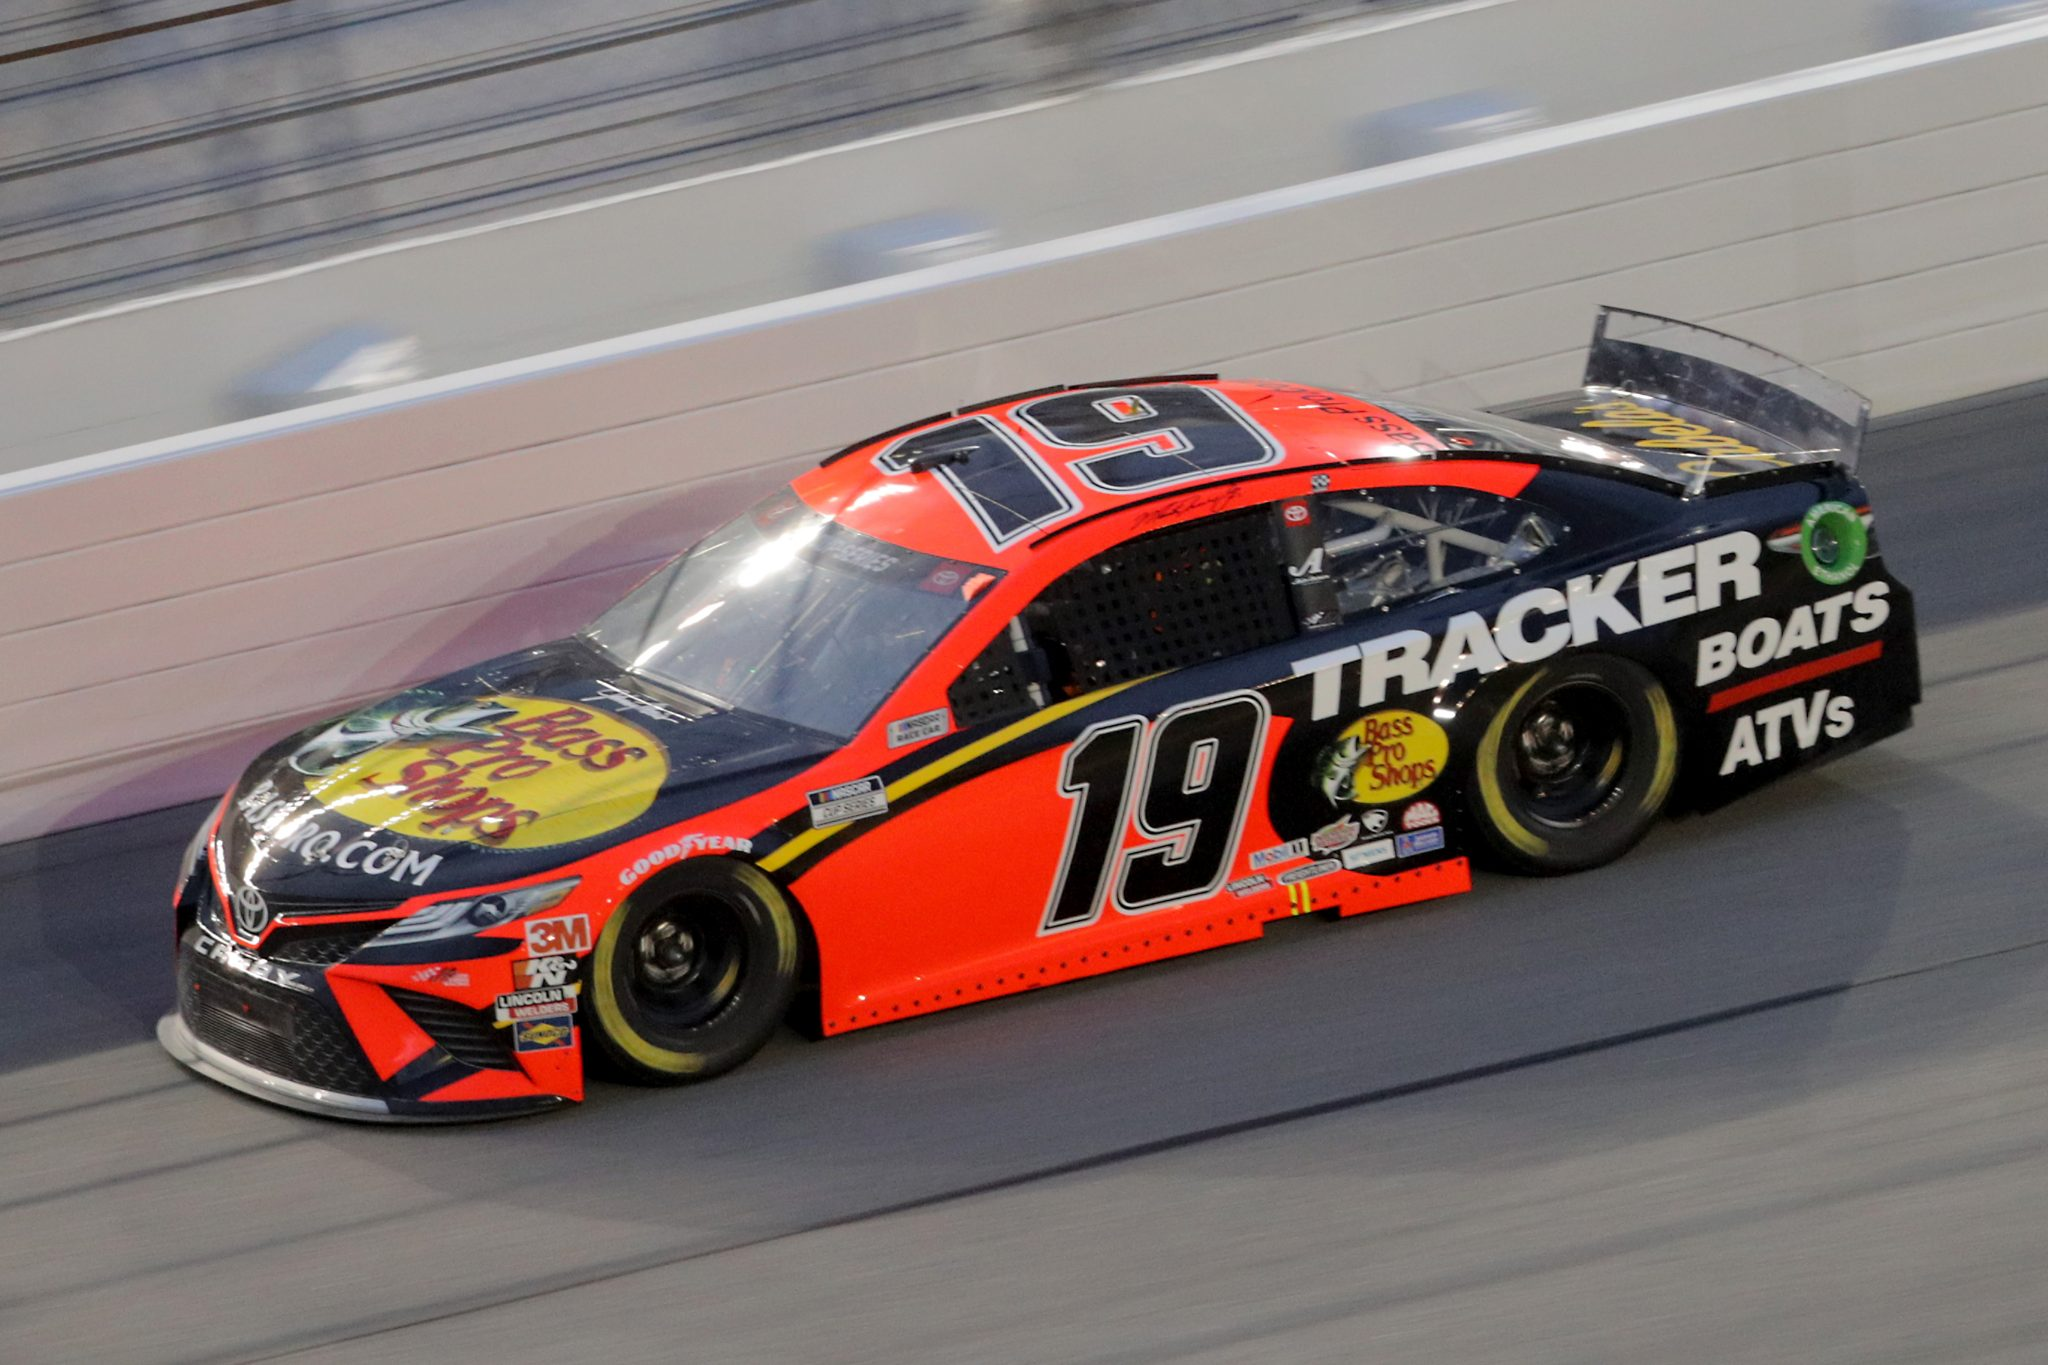 DAYTONA BEACH, FLORIDA - AUGUST 29: Martin Truex Jr., driver of the #19 Bass Pro Shops Toyota, drives during the NASCAR Cup Series Coke Zero Sugar 400 at Daytona International Speedway on August 29, 2020 in Daytona Beach, Florida. (Photo by Chris Graythen/Getty Images)   Getty Images